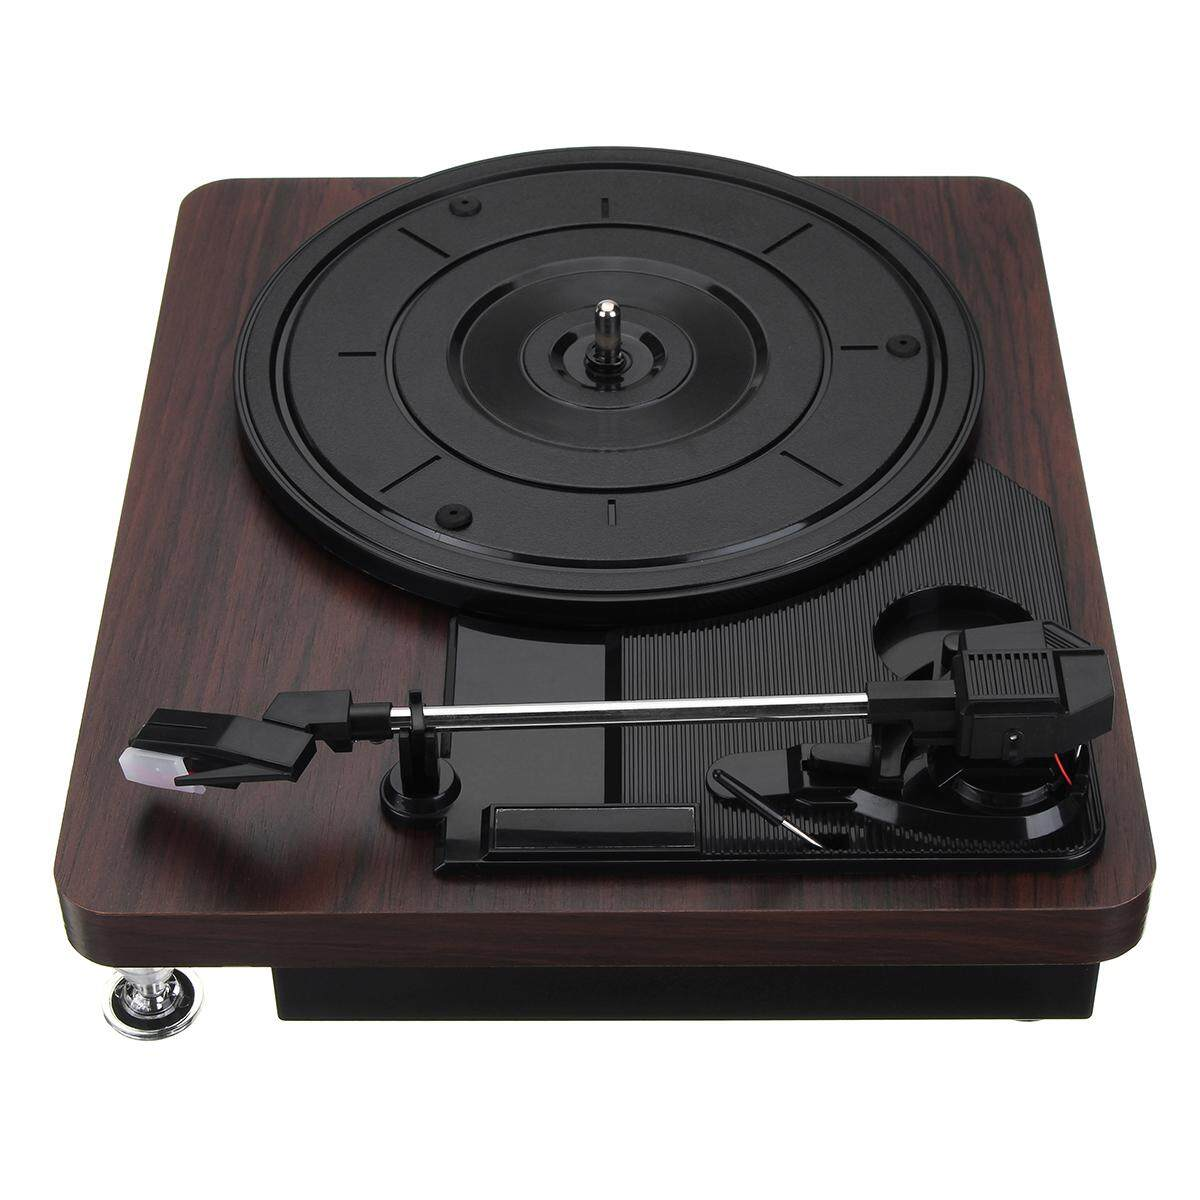 Retro Vinyl Record Player Stereo Turntable Vintage Vinyl Record Player Classic By Threegold.